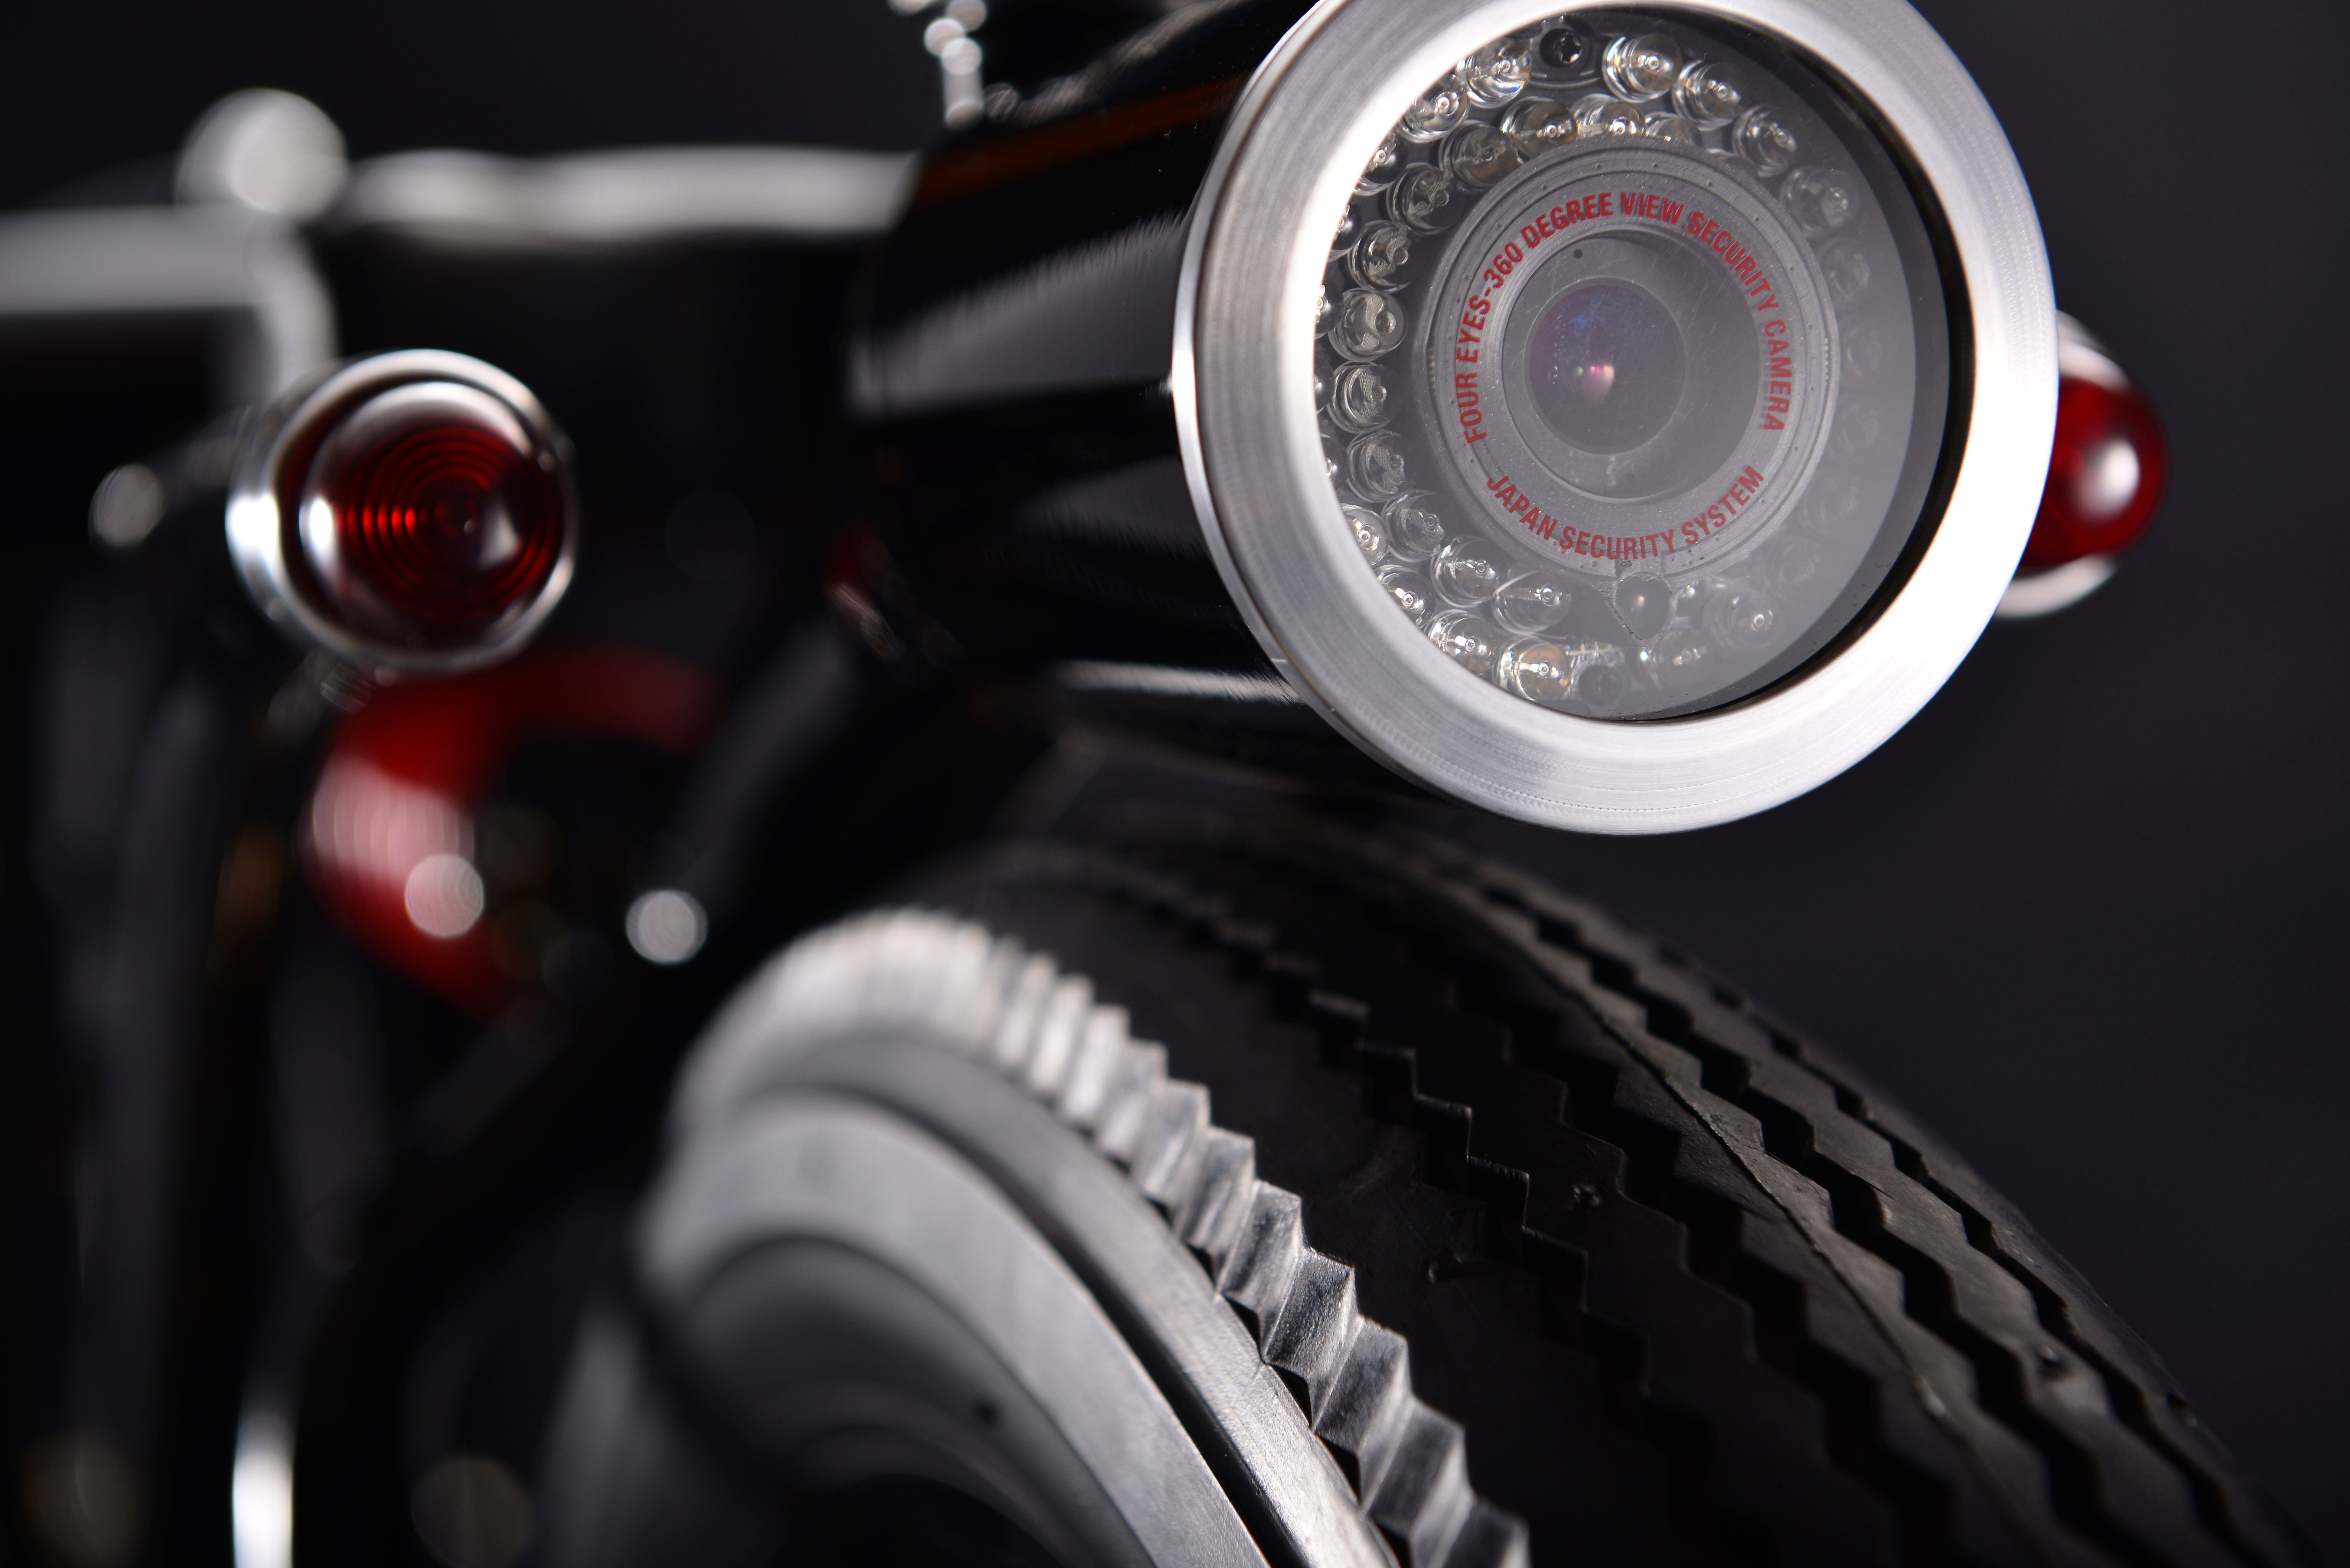 Beautiful Custom Motorbike Is Actually a 360º Security Camera